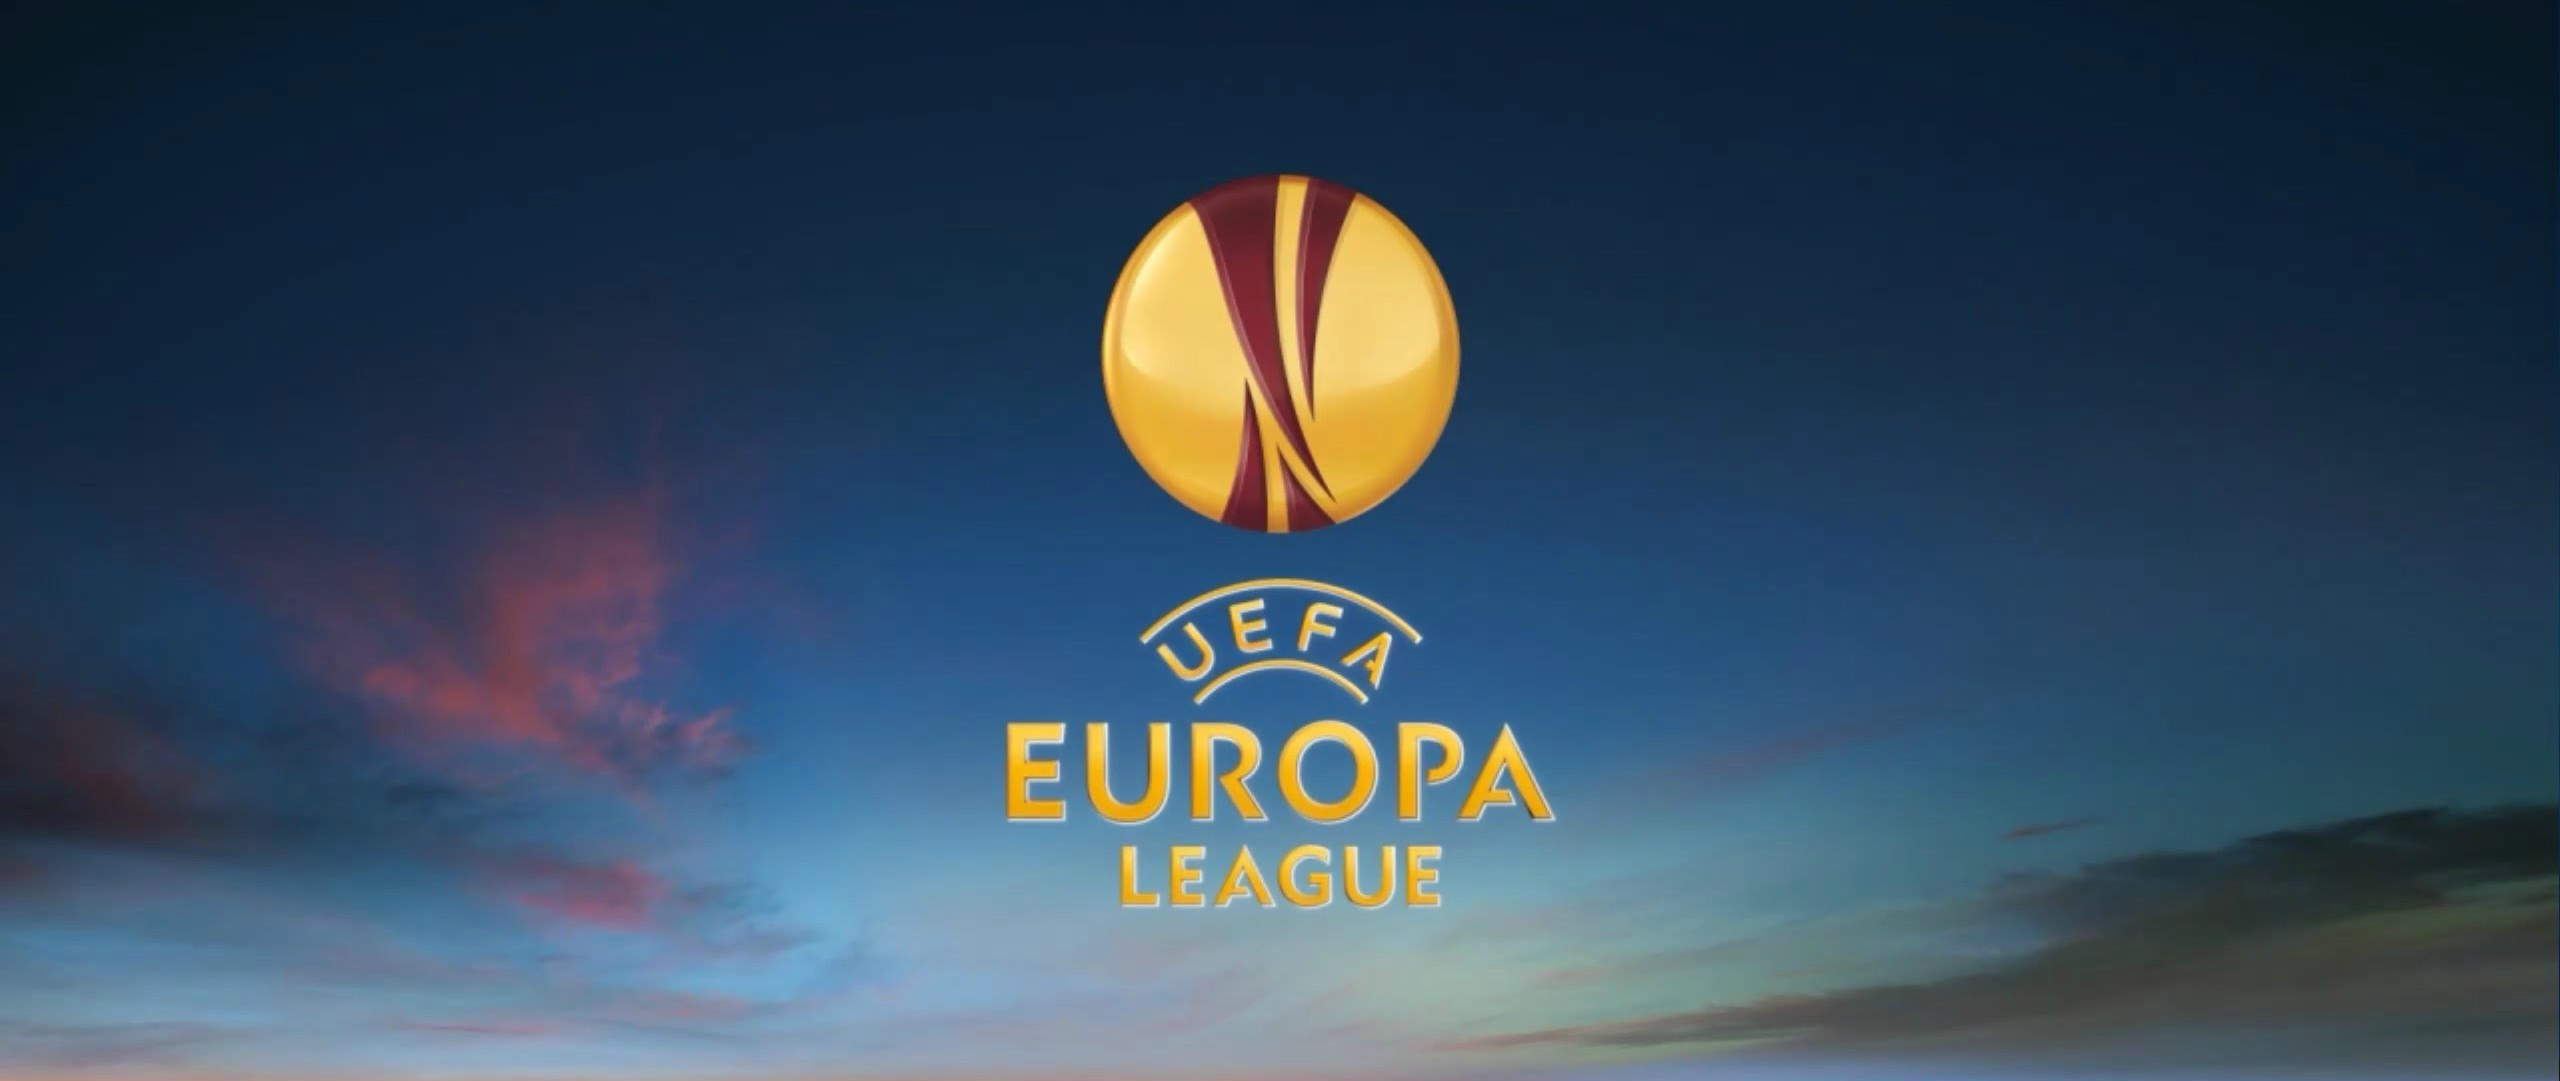 europa league rev header